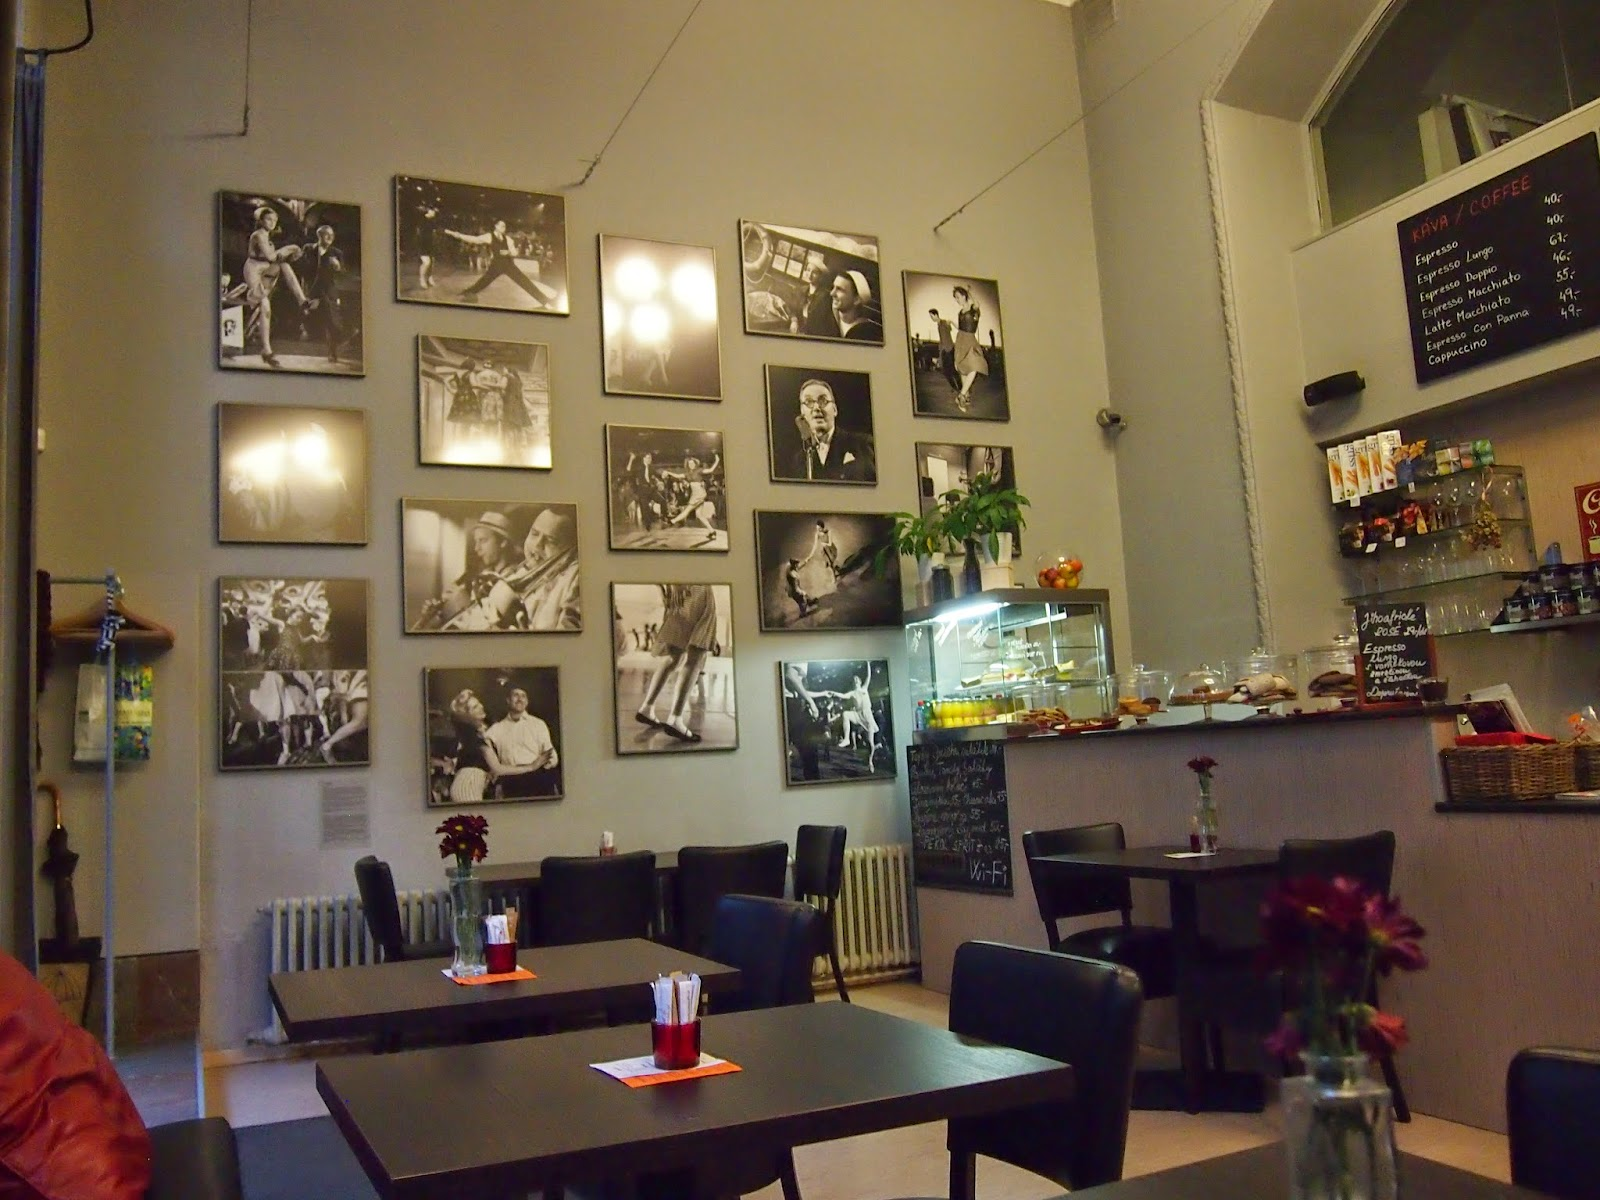 The inside of the Leica Cafe in Prague